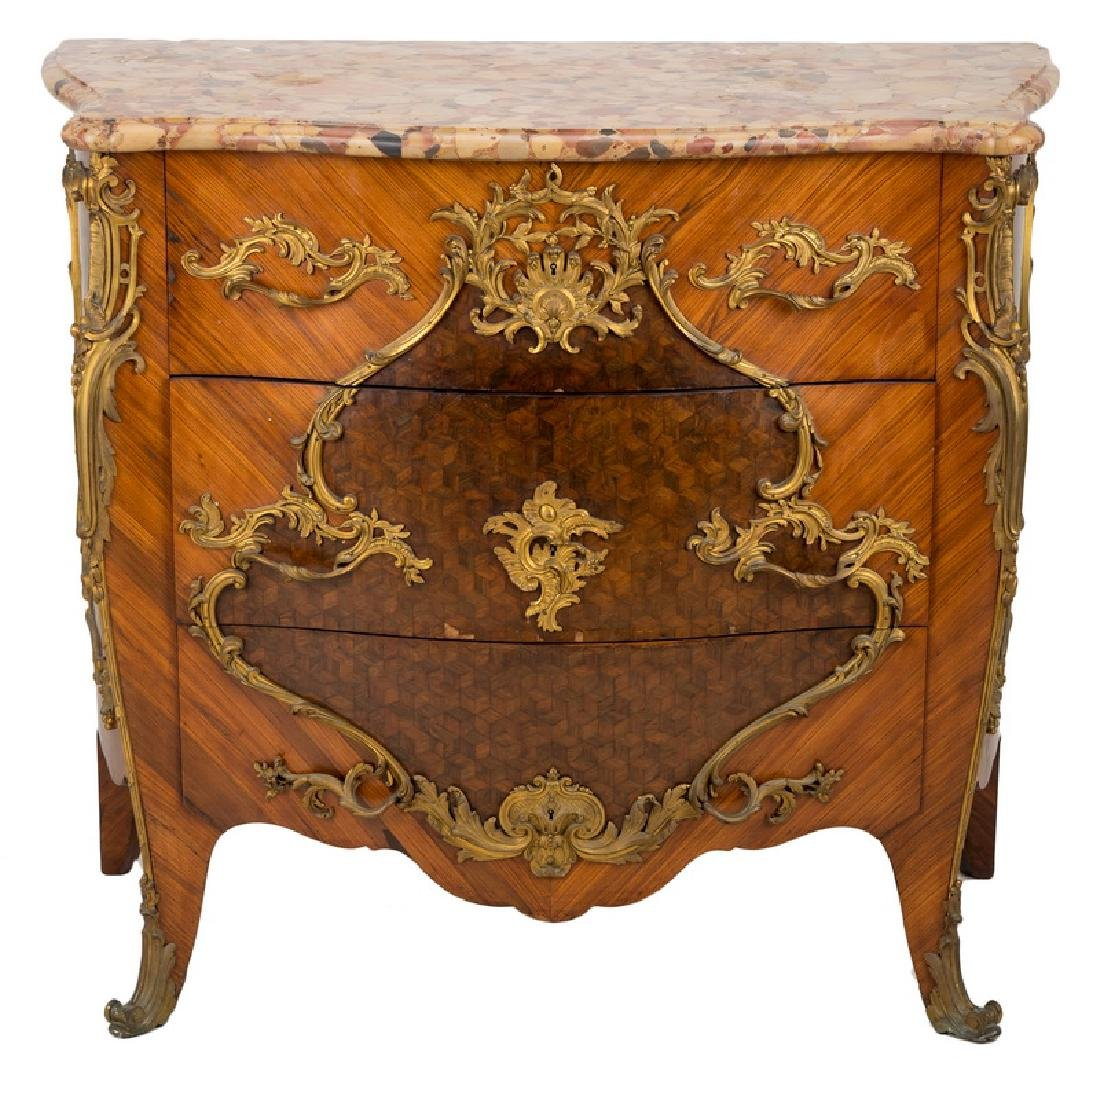 LOUIS XV STYLE GILT BRONZE MOUNTED KINGWOOD & PARQUETRY